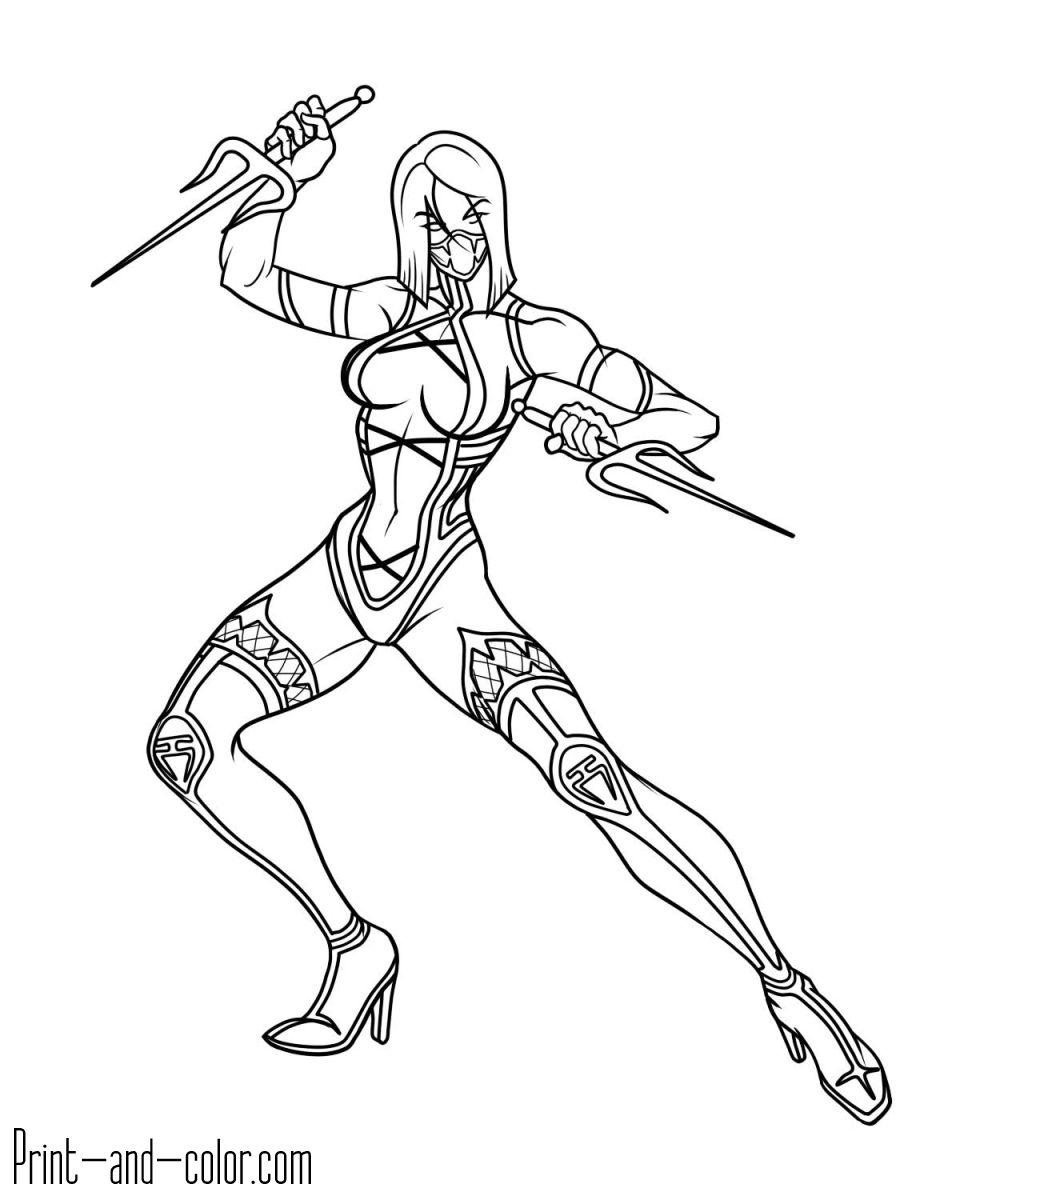 Scorpion Coloring Pages Mortal Kombat Coloring Pages Print ...